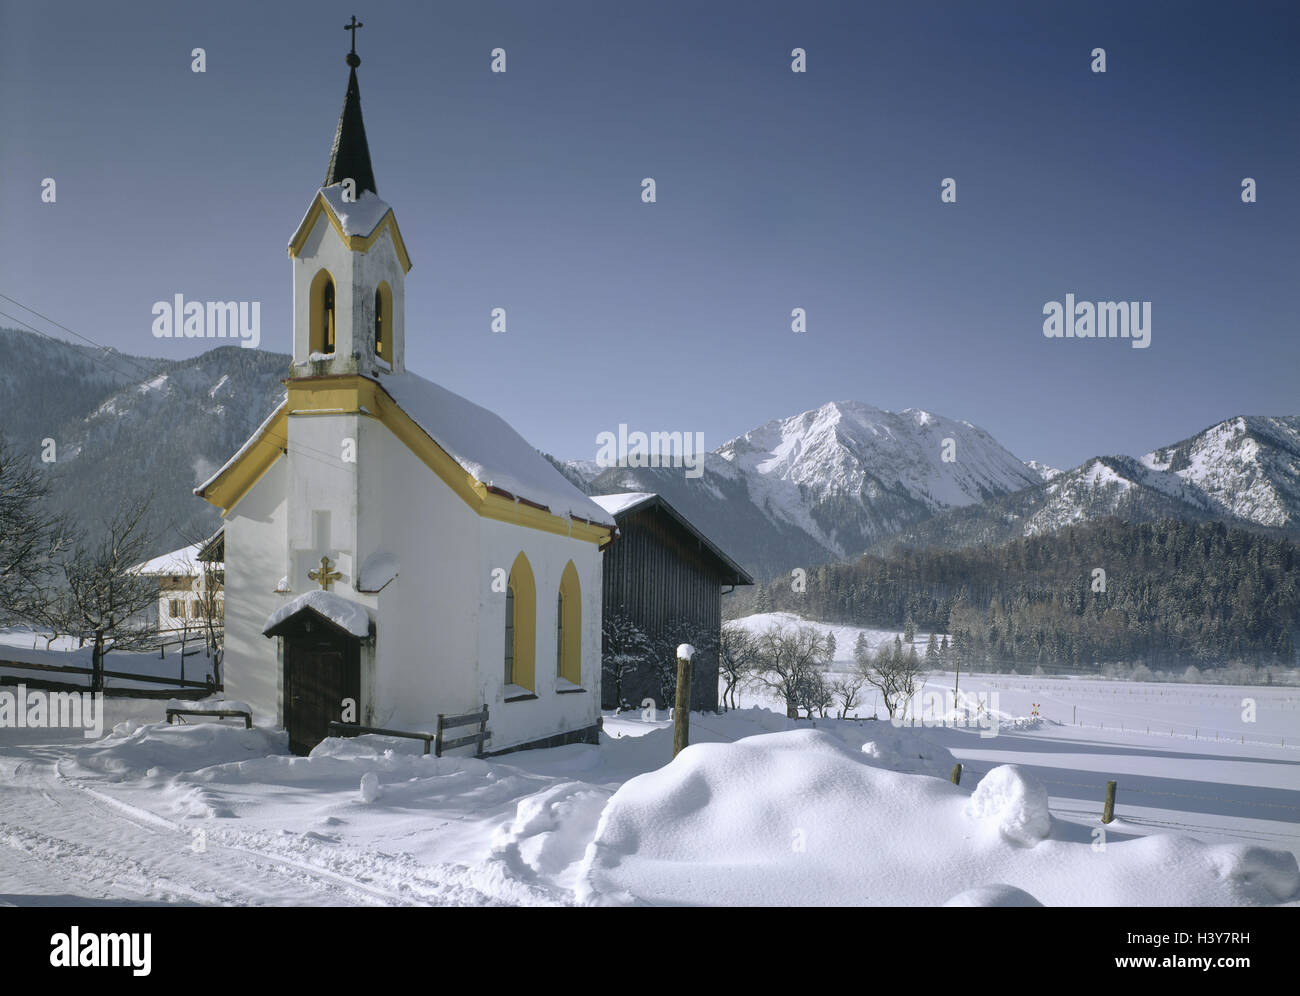 Germany, Upper Bavaria, Bayrischzell, band, winter, Europe, Bavaria, mountain landscape, snow, church, faith, religion, - Stock Image